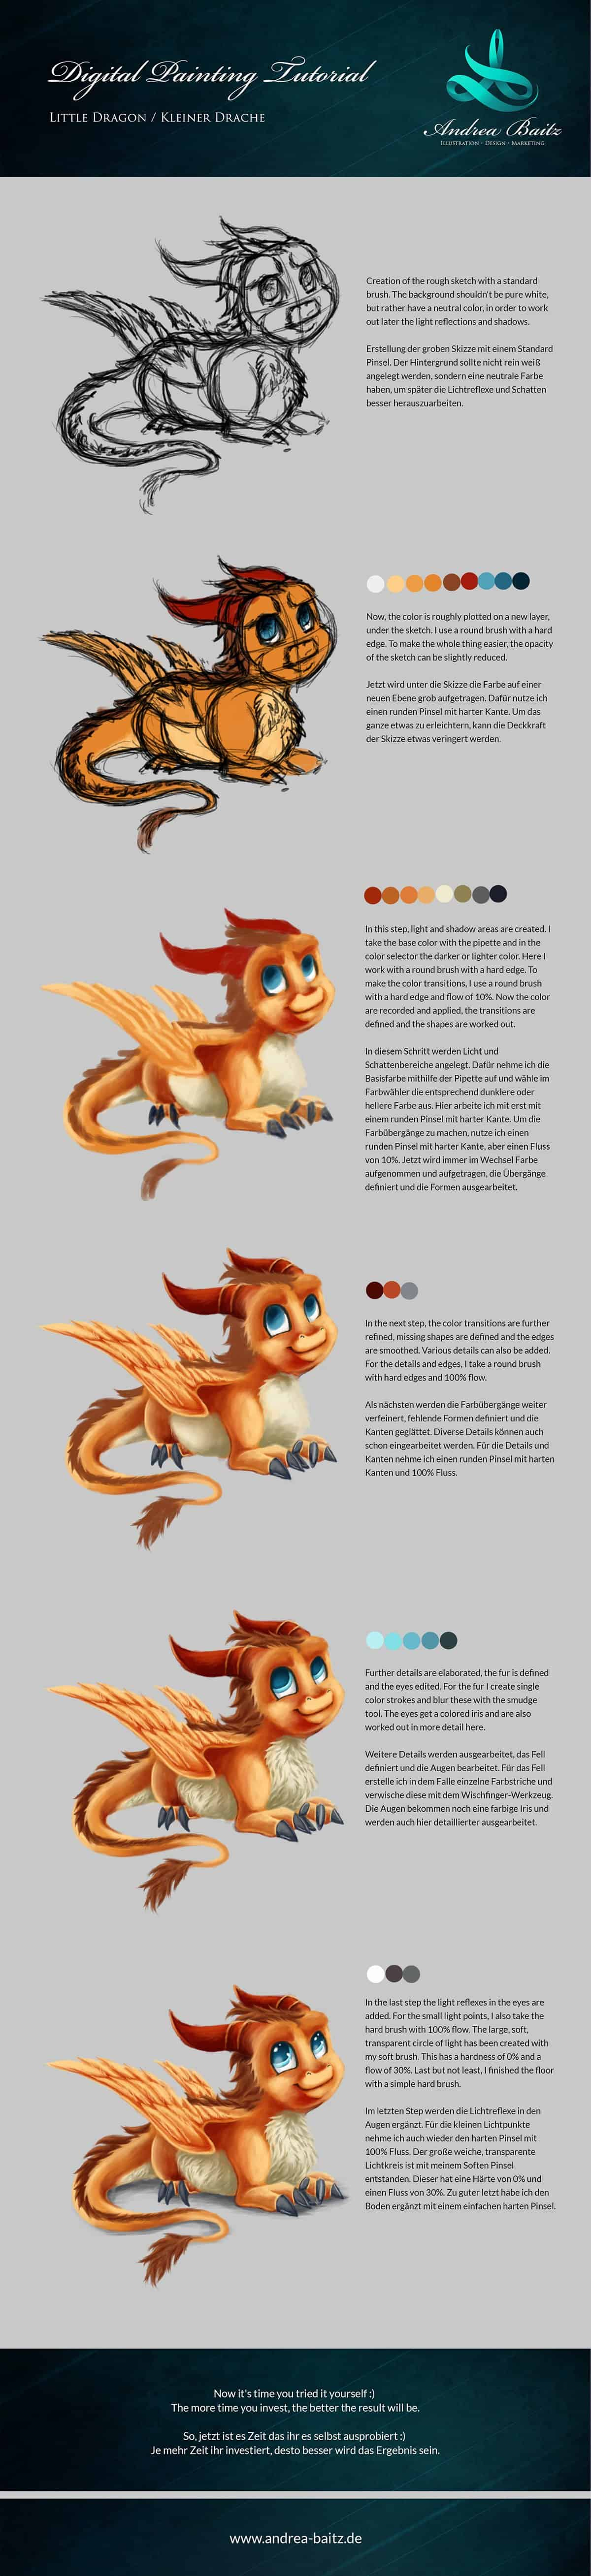 Digital Painting Tutorial Little Dragon, Drawing Tutorial, Dragon, Drache, Illustration, Andrea Baitz